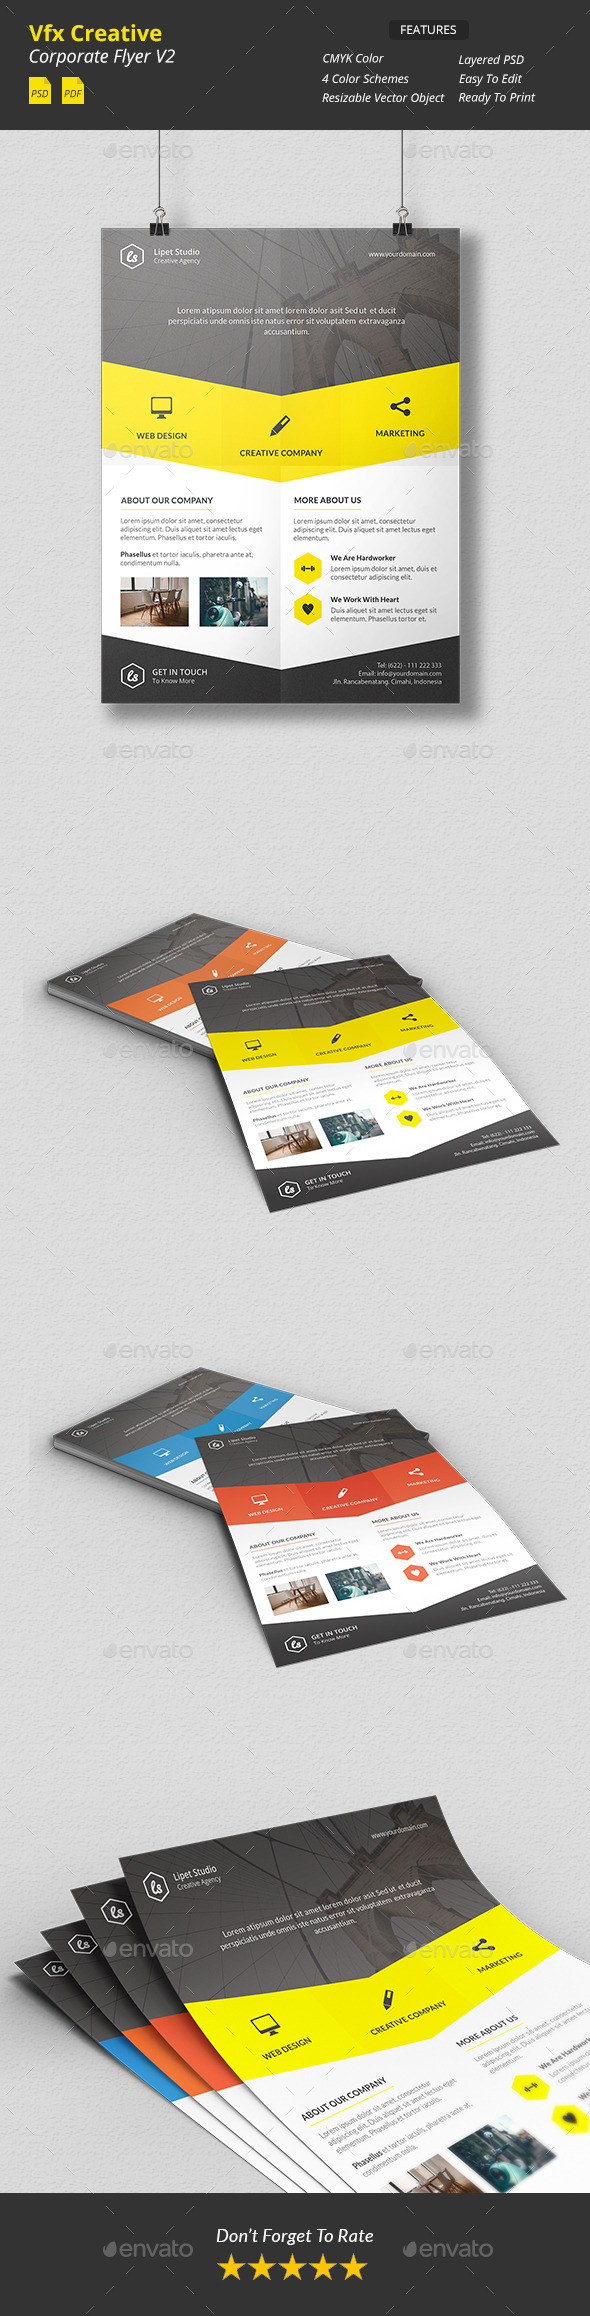 GraphicRiver Vfx Creative Corporate Flyer v2 10409949